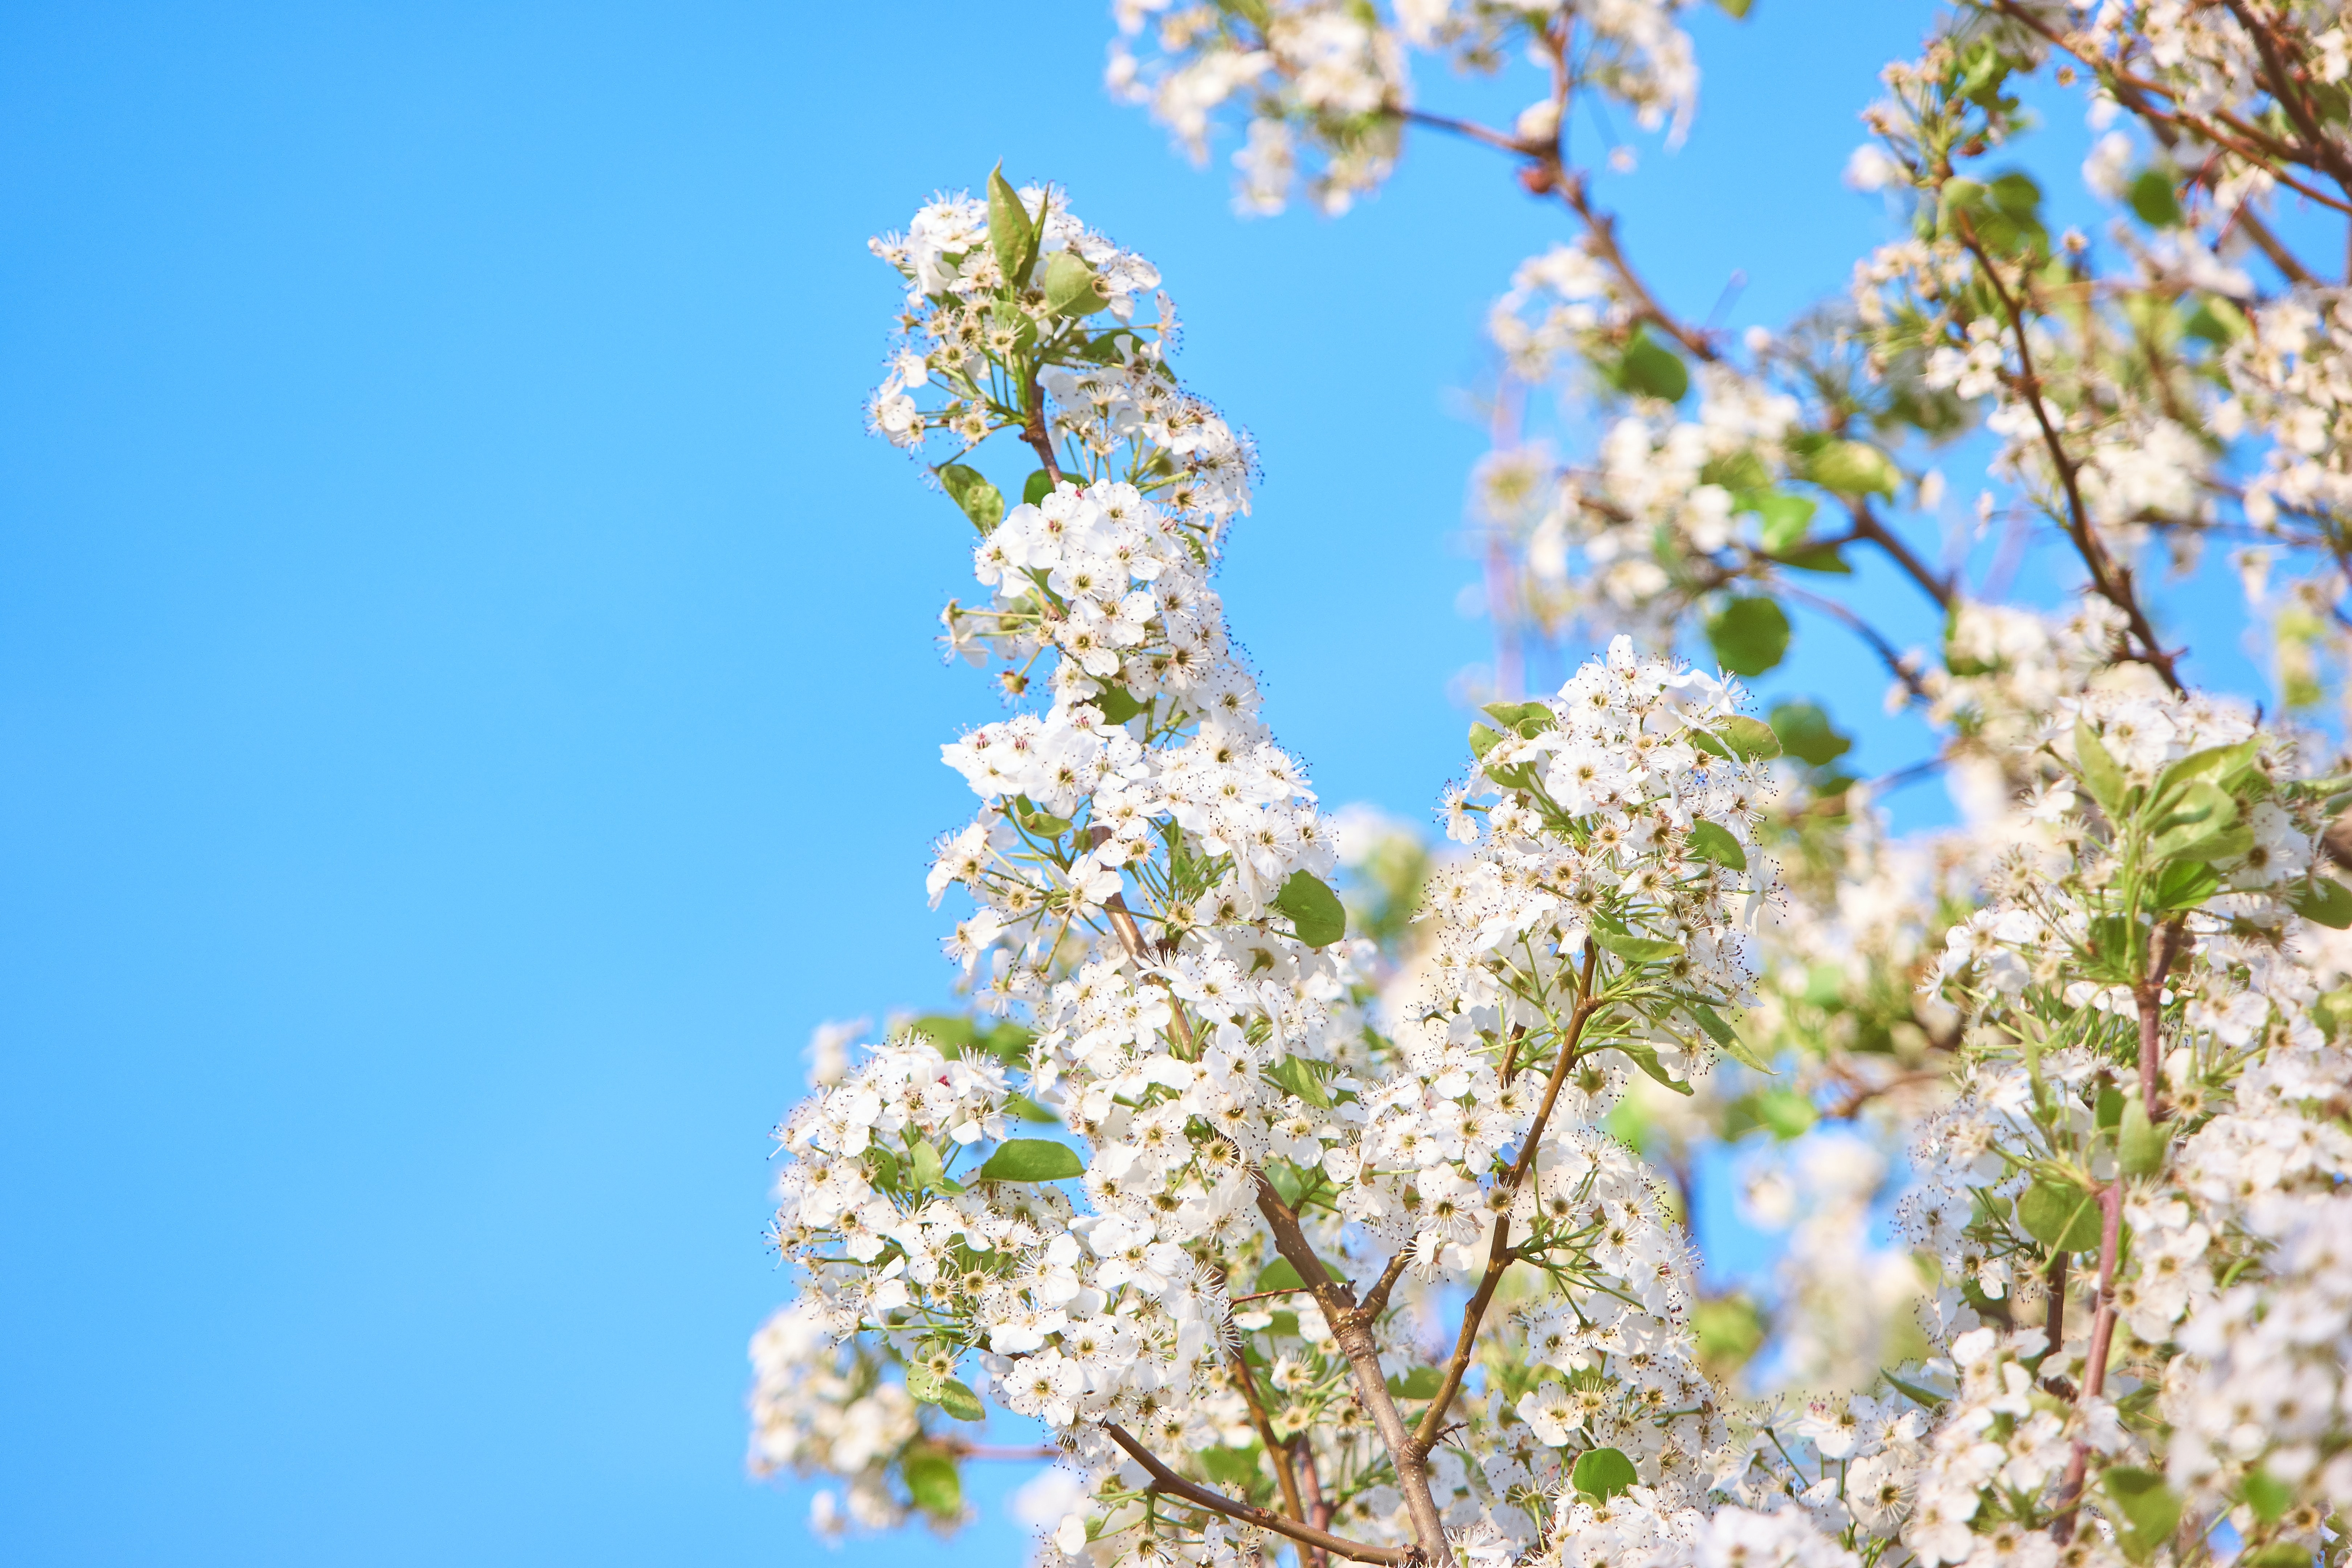 Leafy branches with thick cherry blossom and clear blue sky background in Spring